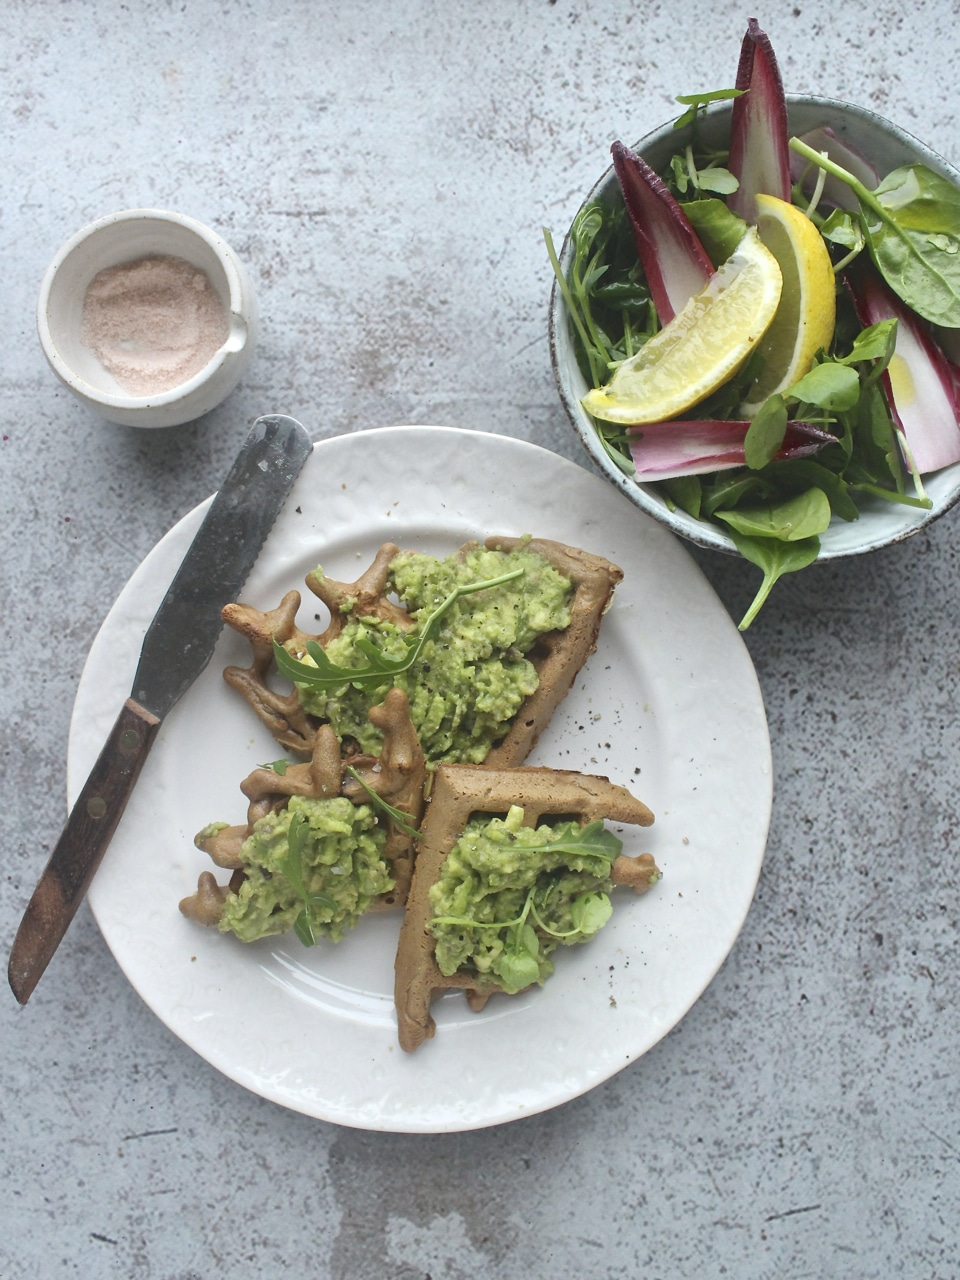 leek waffles with parmesan, gluten free, egg free, vegan and dairy free option